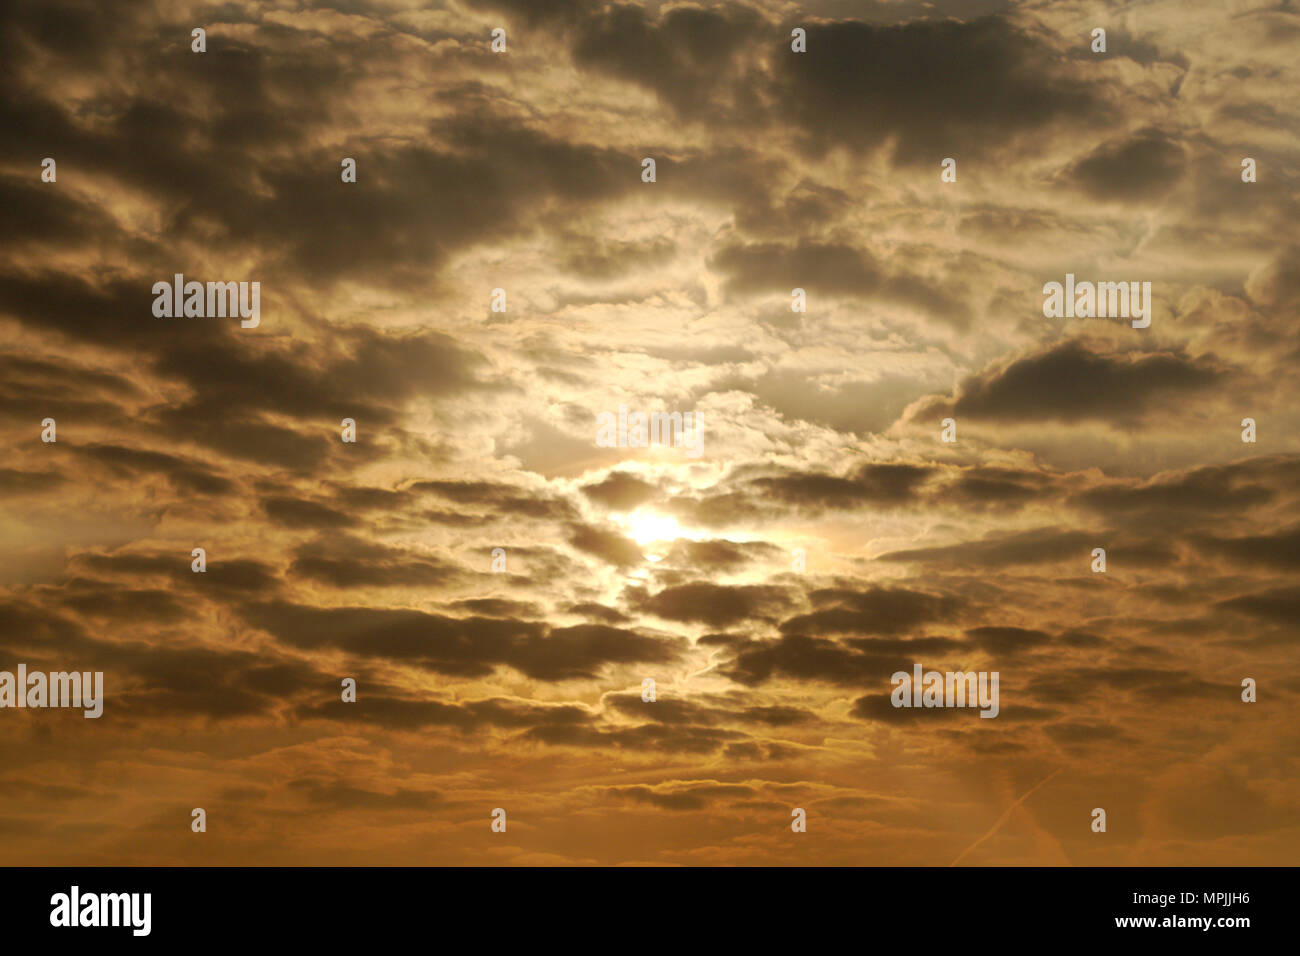 Evening sun partially obscured by clouds. Stock Photo